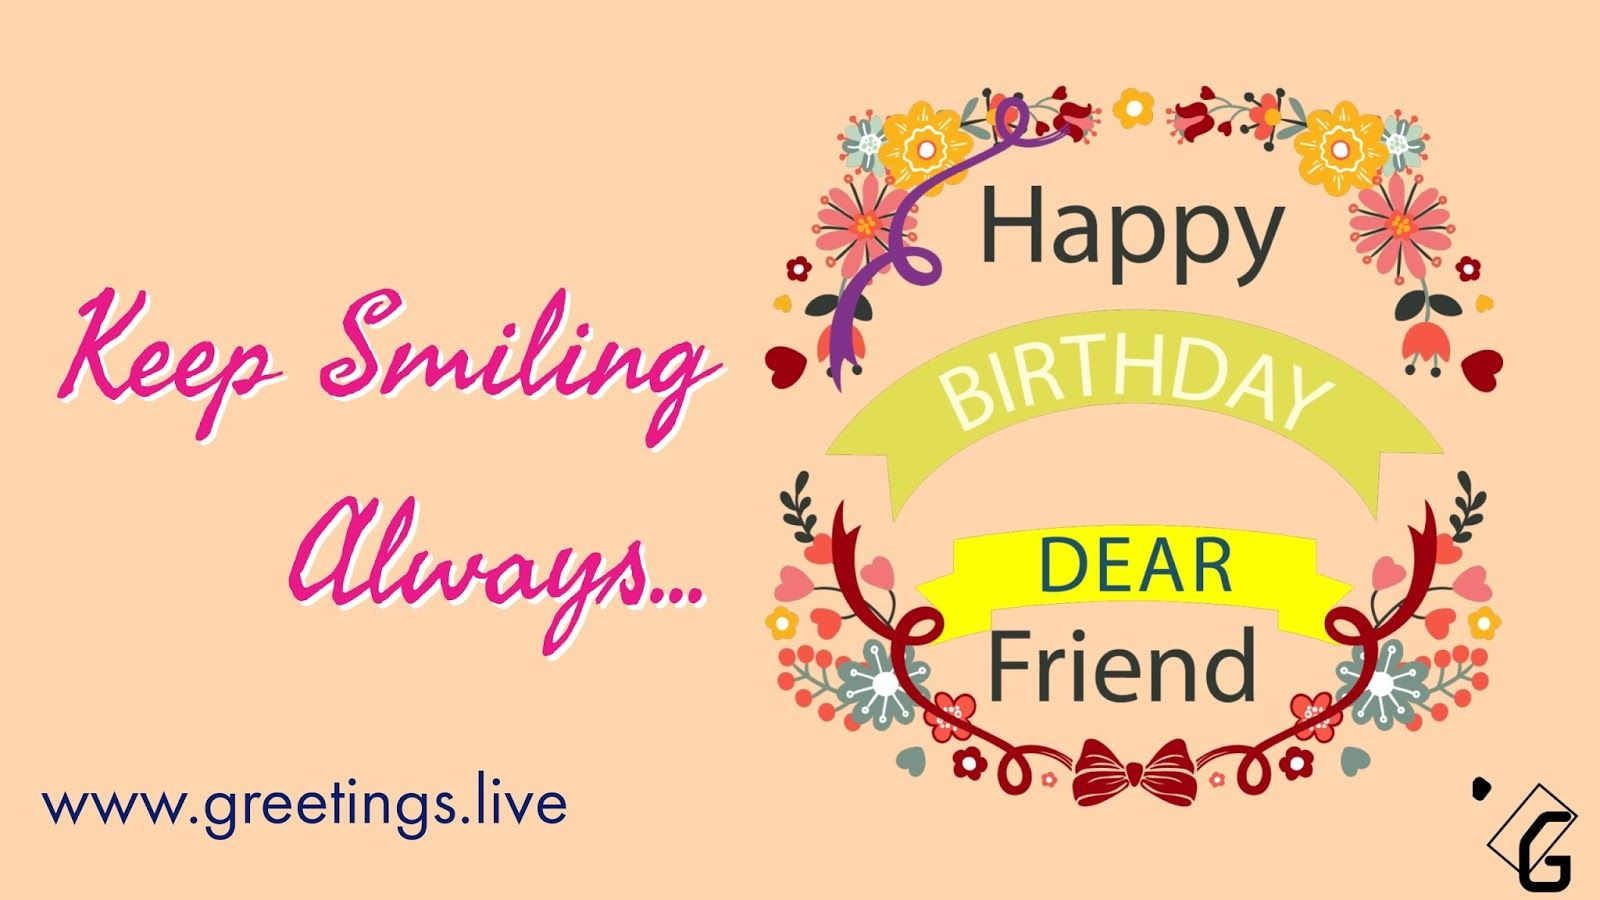 To All Friends Birthday Wishes Simple Greetings Happy My Dear Friend HD